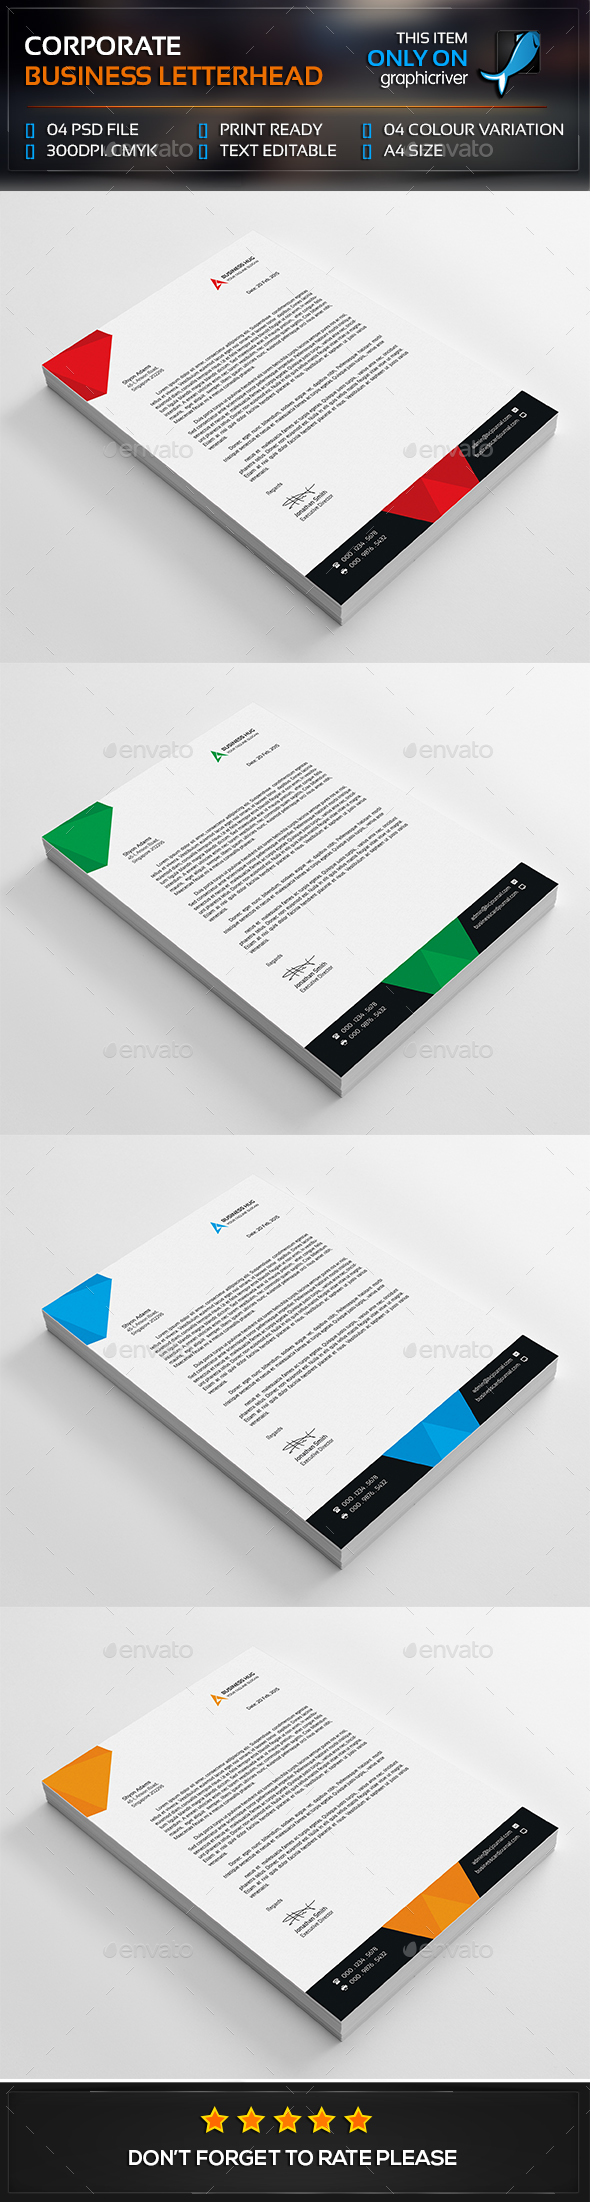 Abstract Corporate Business Letterhead  GF  Accessories